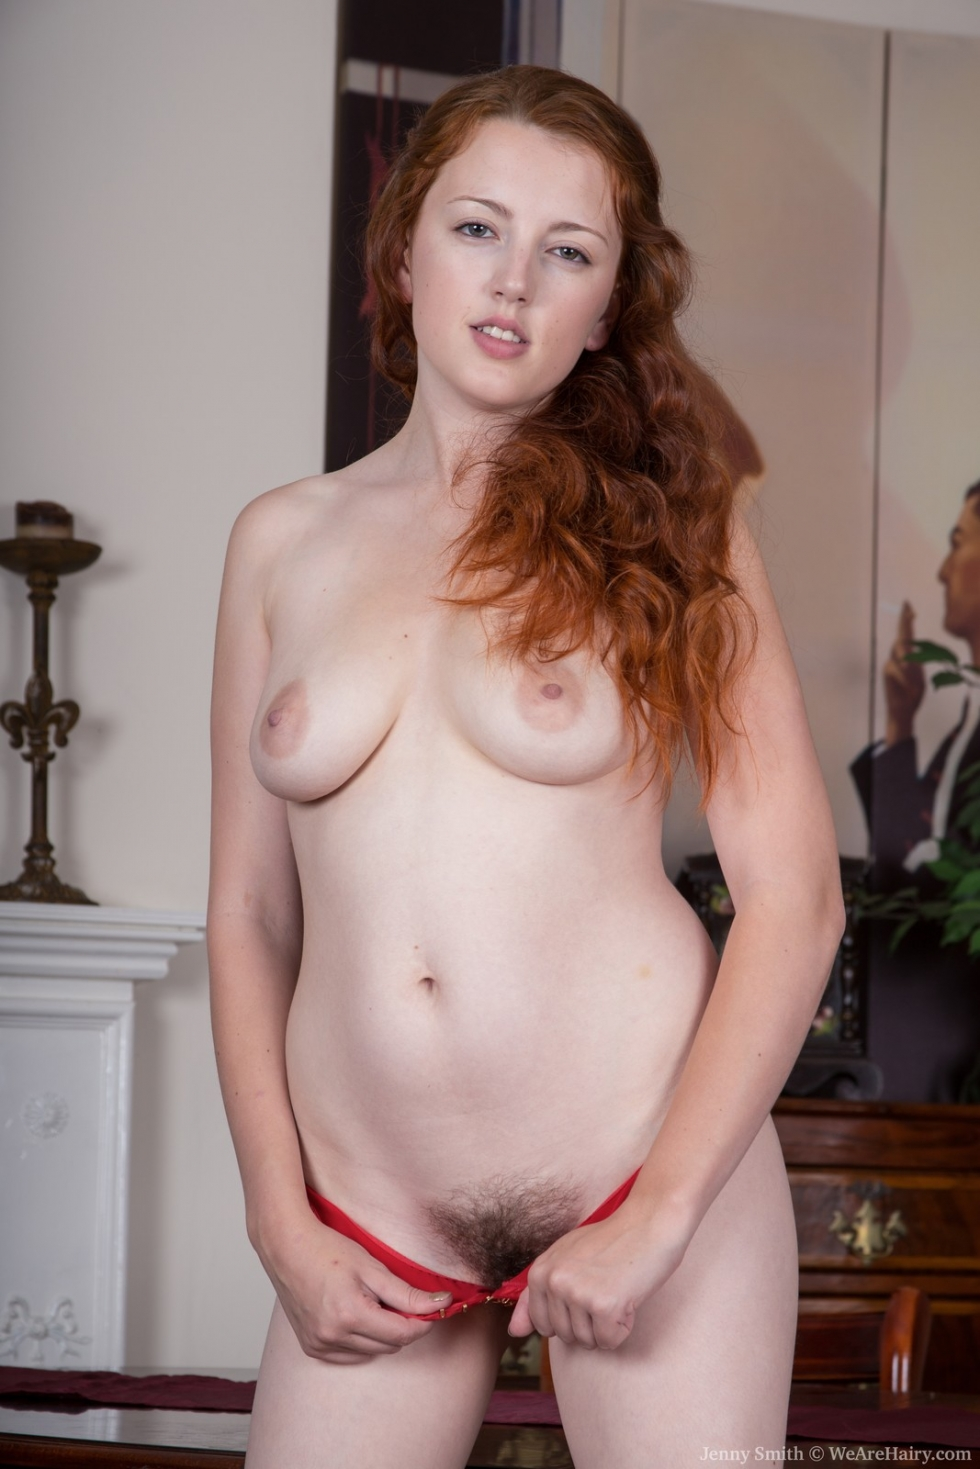 Jennie smith naked sexy nude